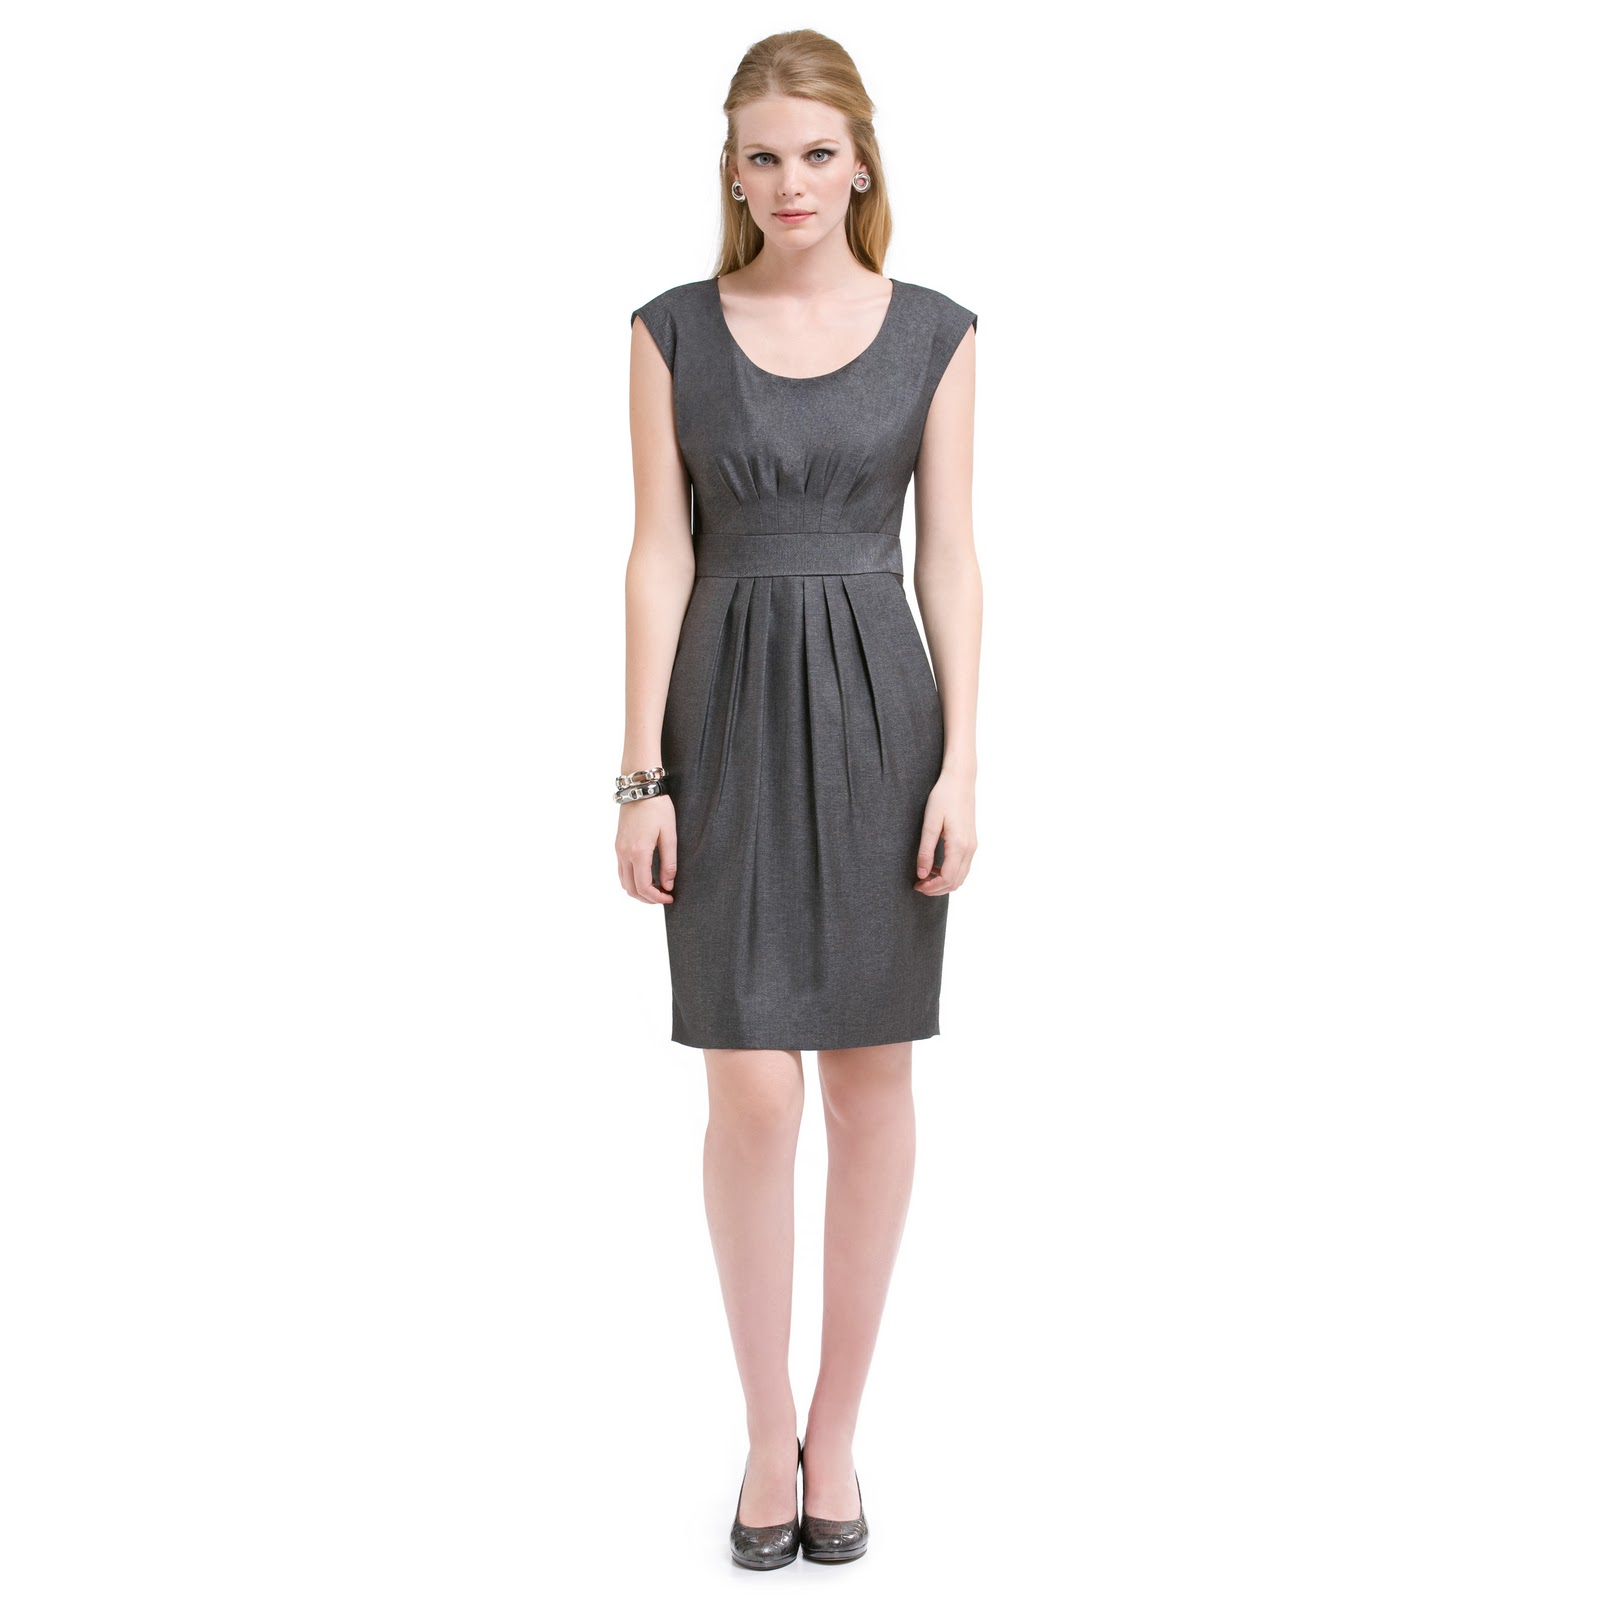 anne klein evening dresses photo - 1